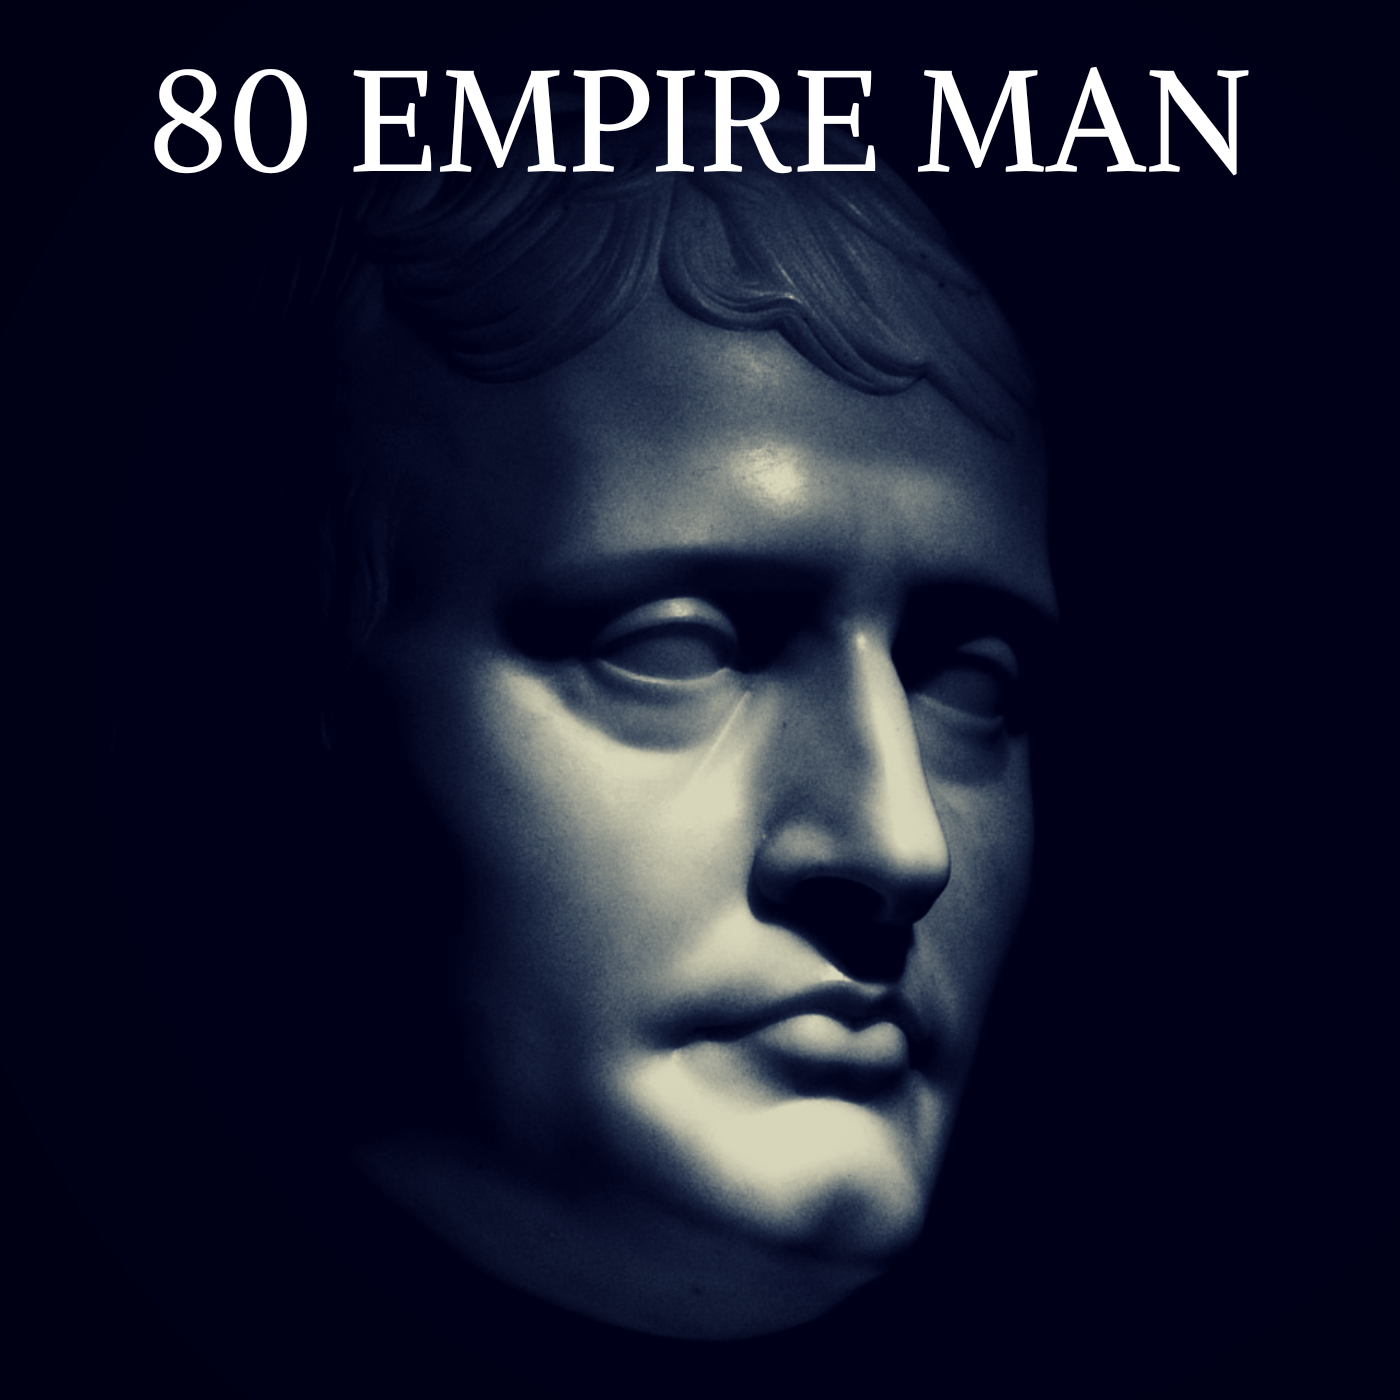 80EMPIRE MAN